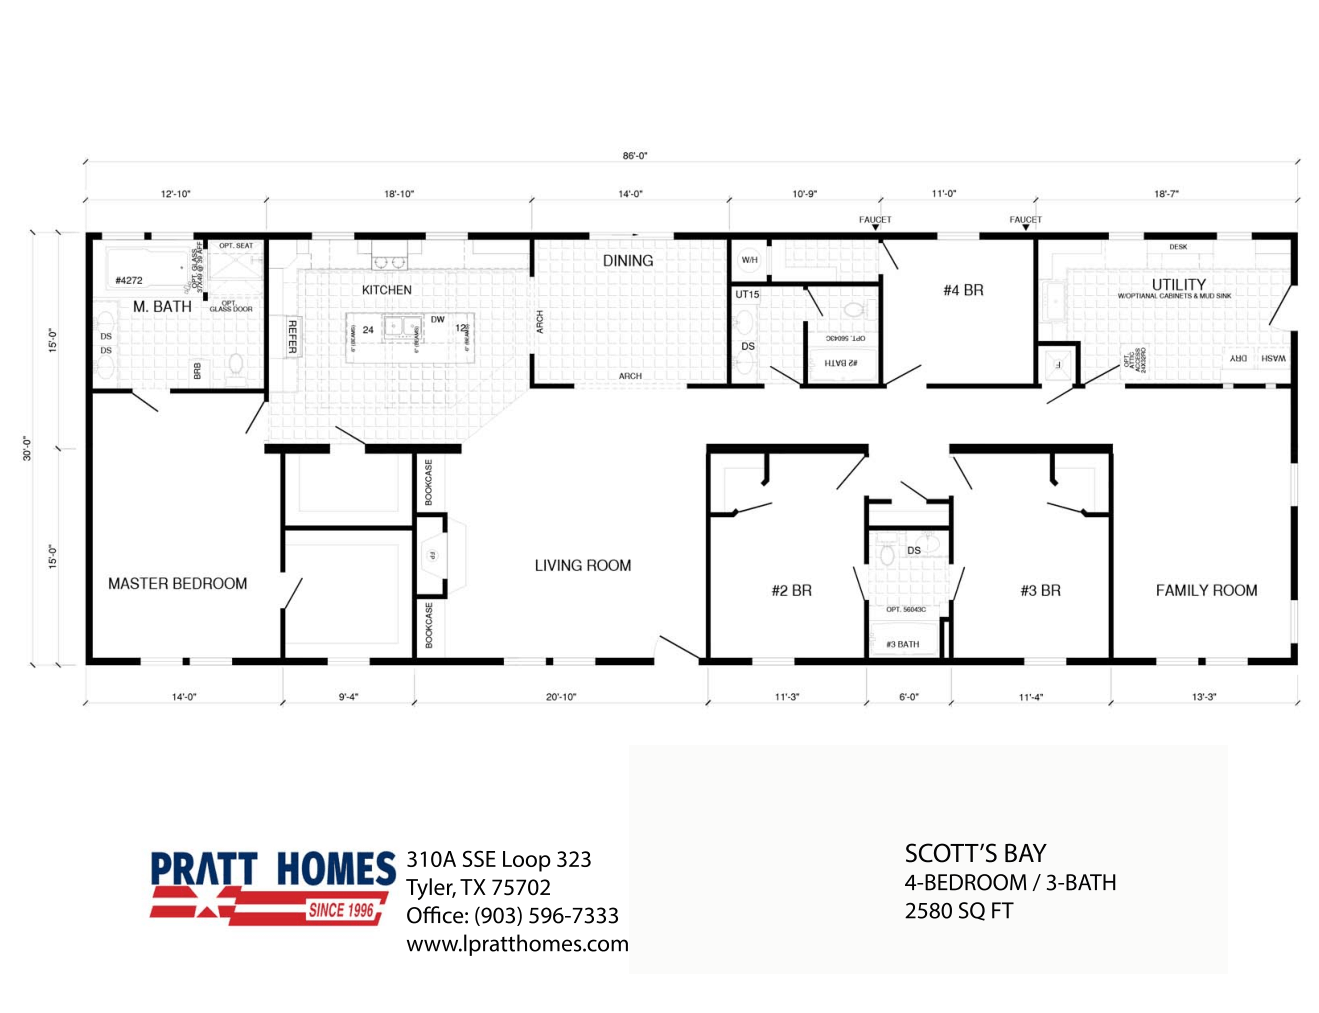 Floor Plan for house model Scott'sBay by Pratt from Tyler Texas